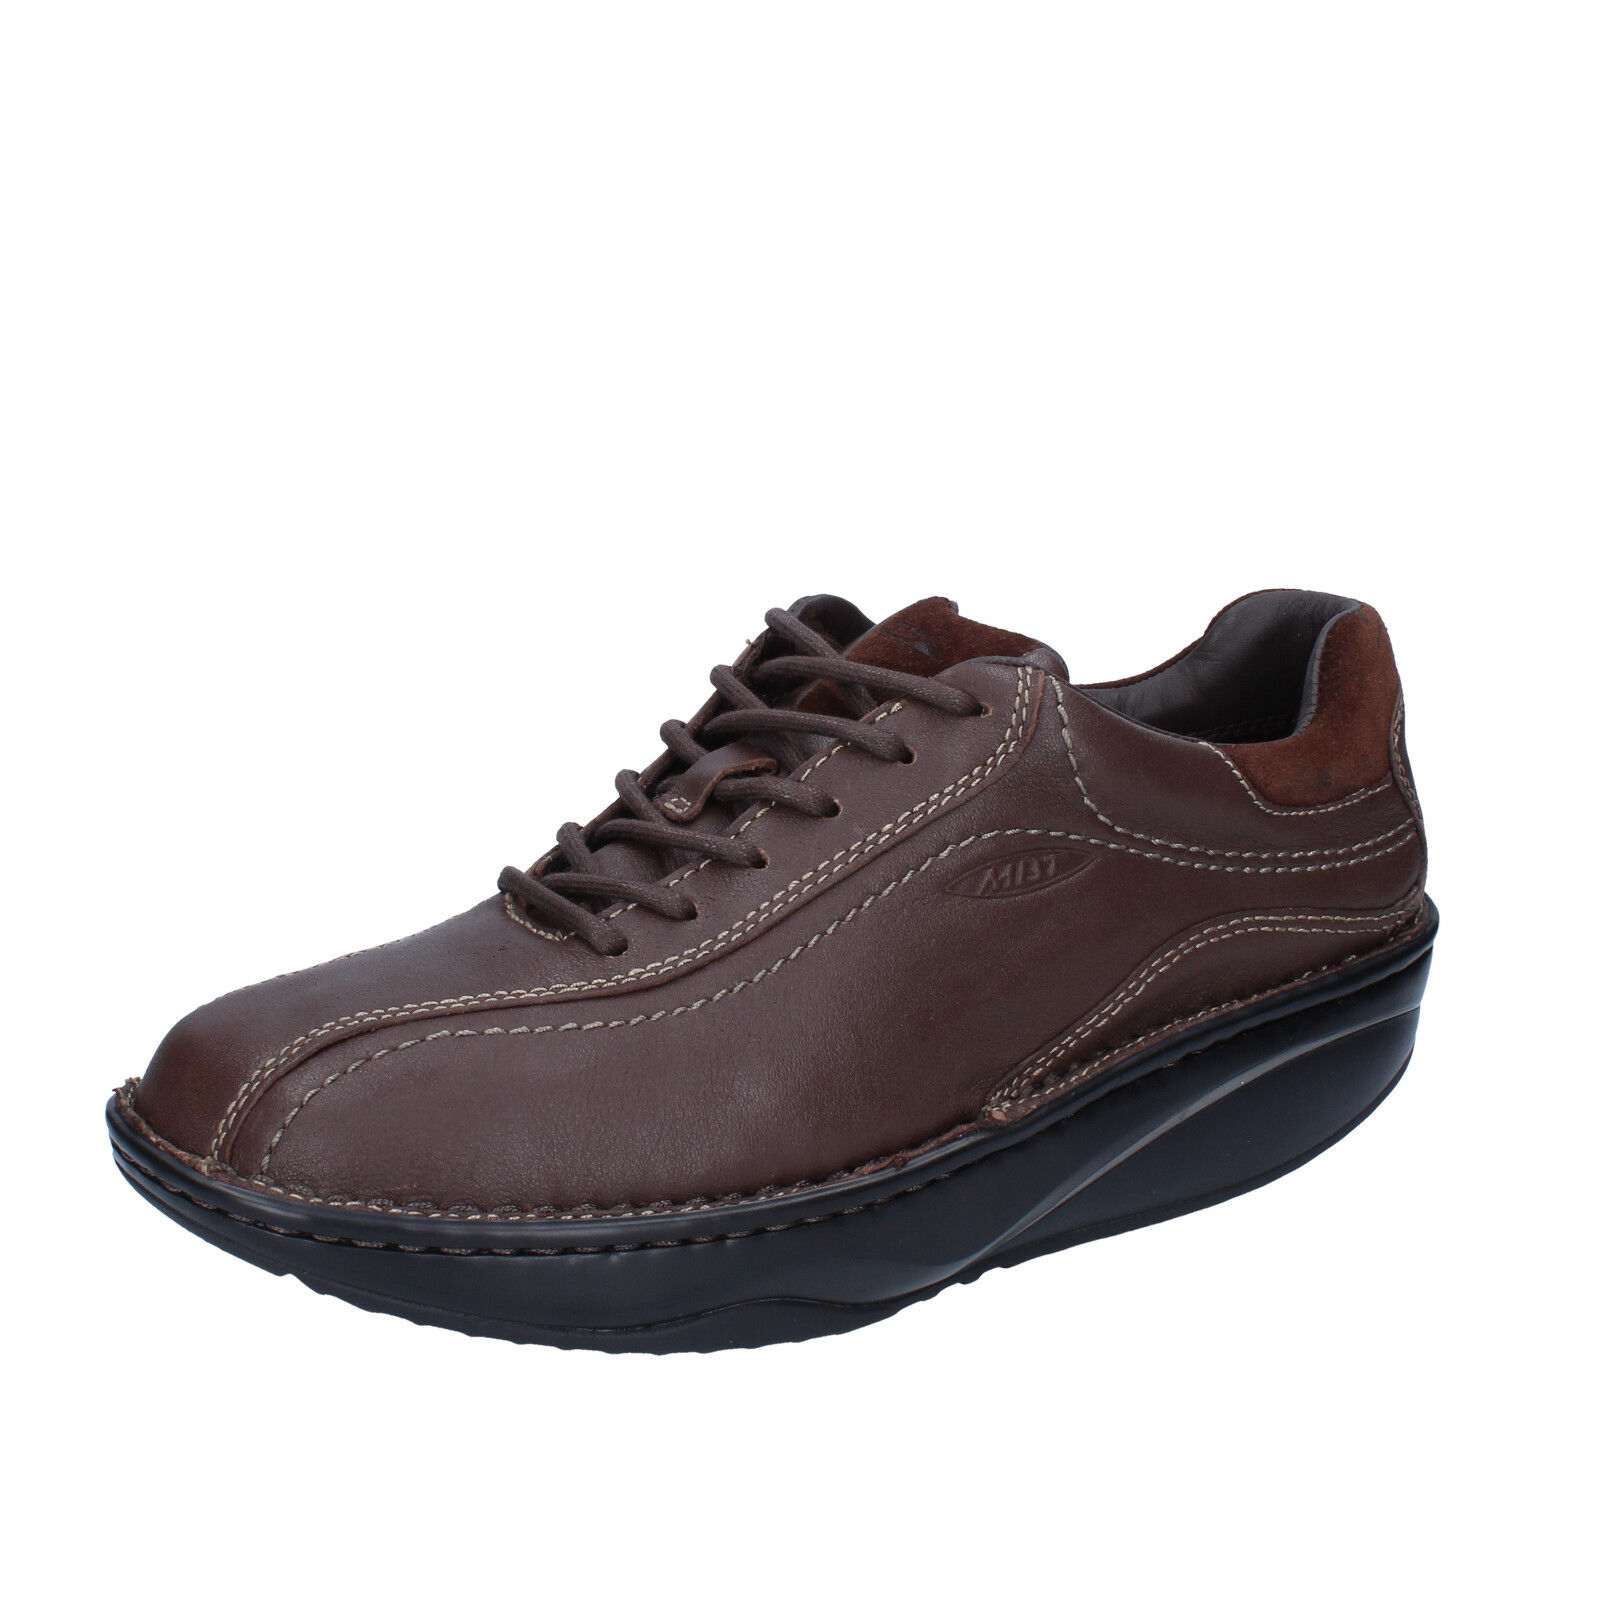 Men's shoes MBT 5   5,5 () sneakers brown leather dynamic BY261-B